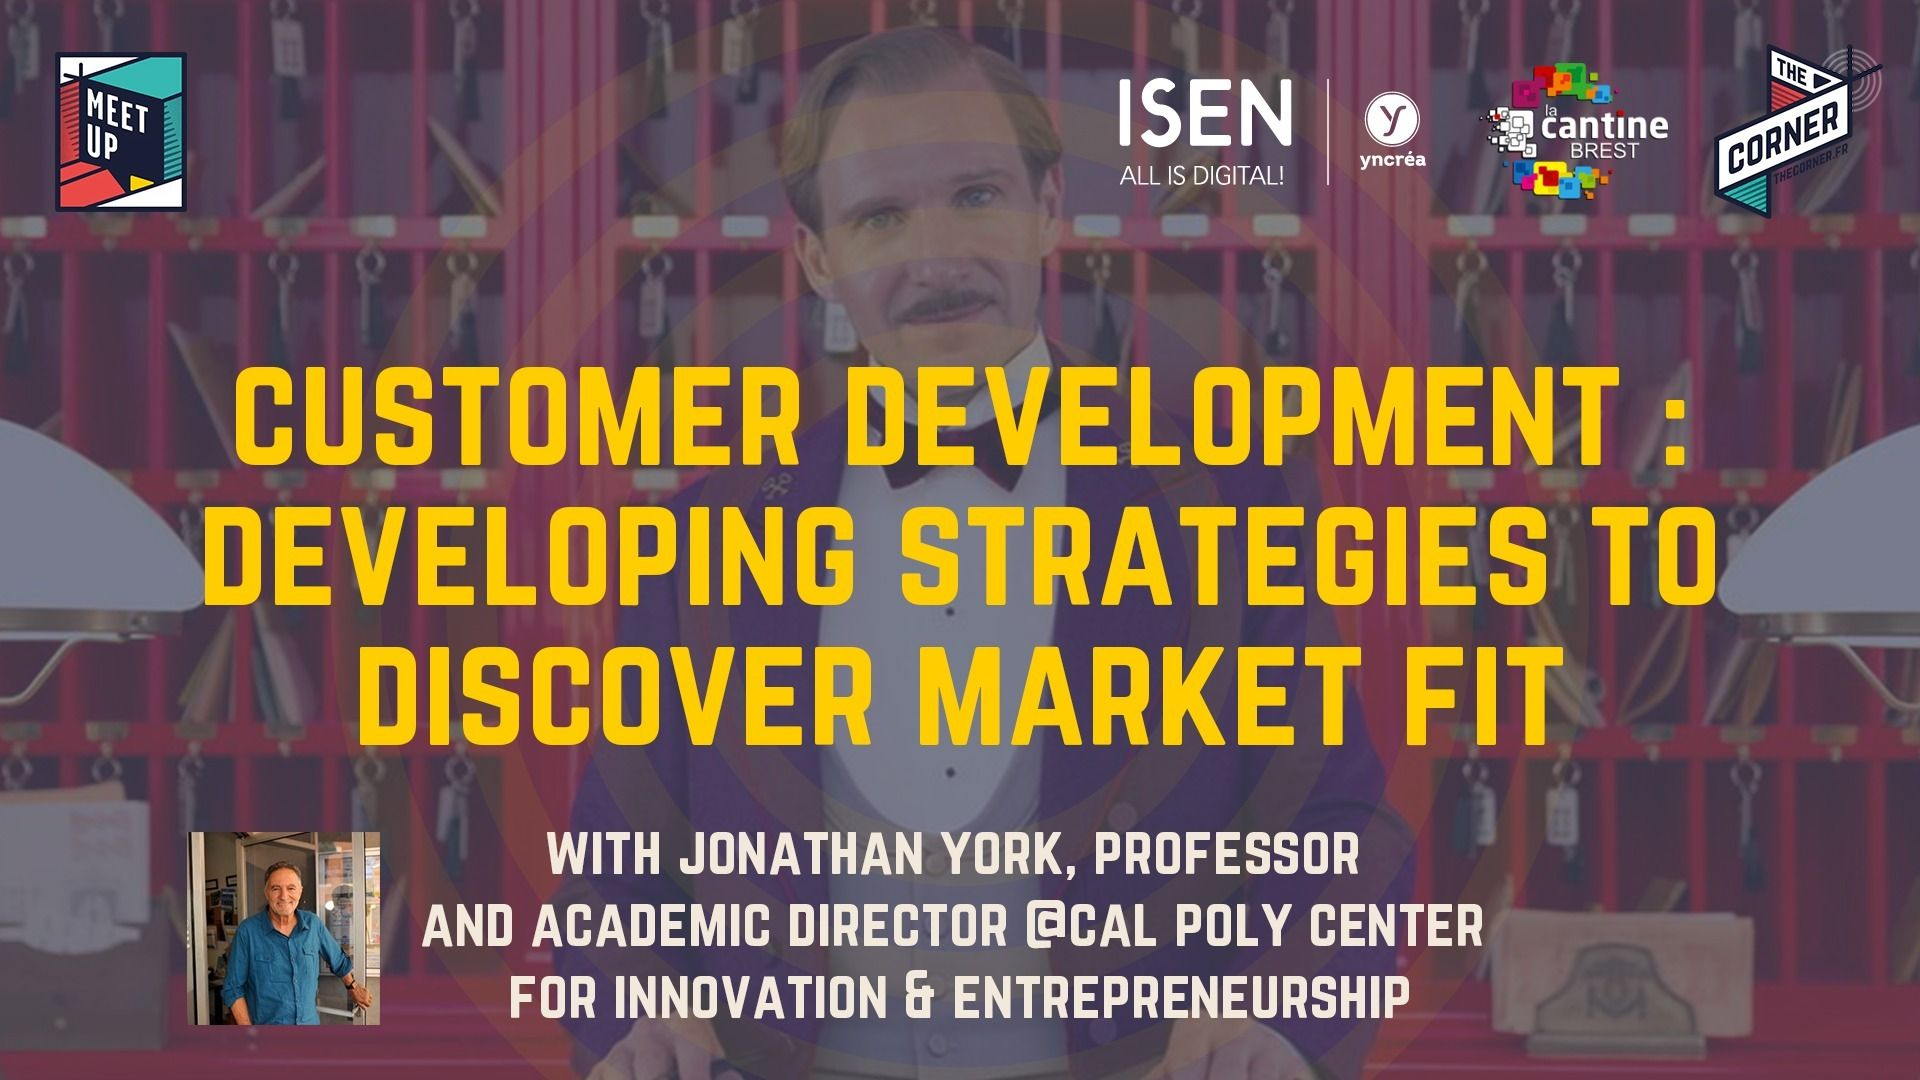 """Developing strategies to discover market fit"" with Jonathan York @Cal Poly @ The Corner 